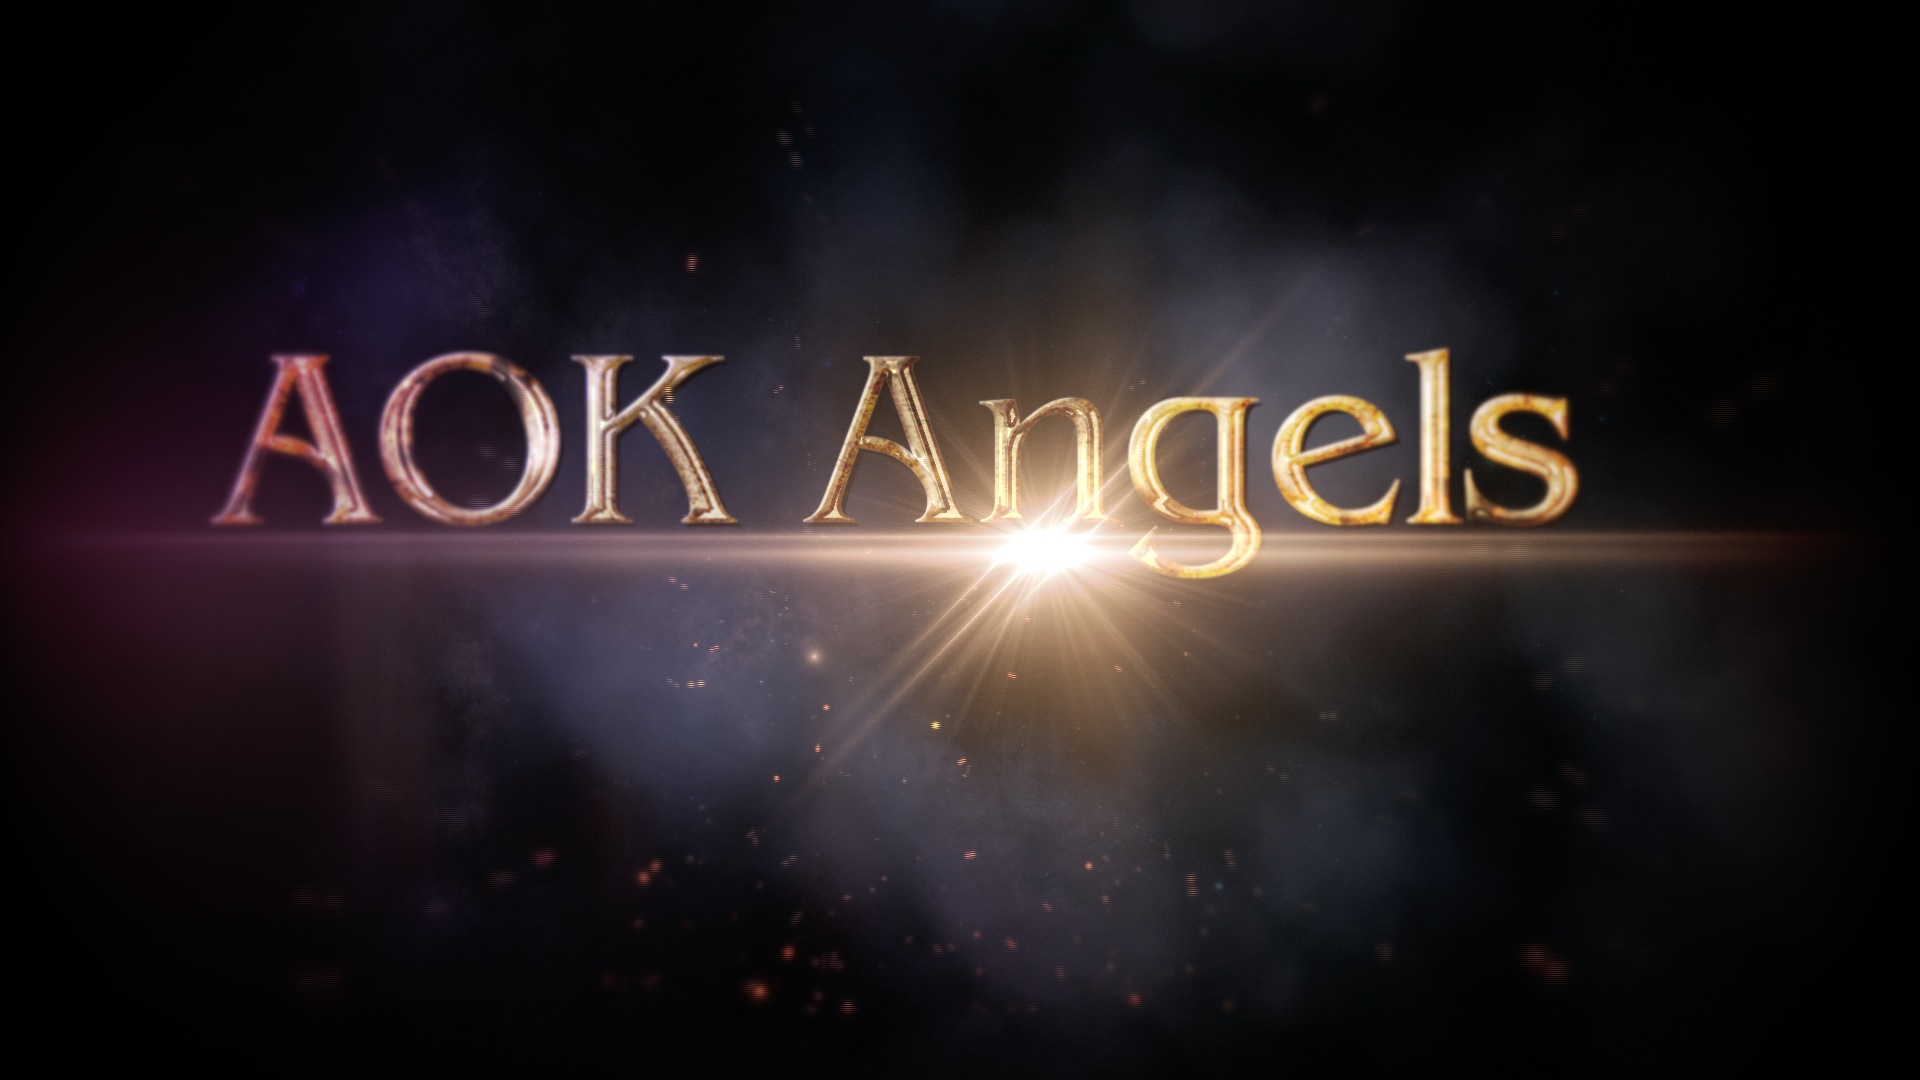 AOK Angels Black Screen